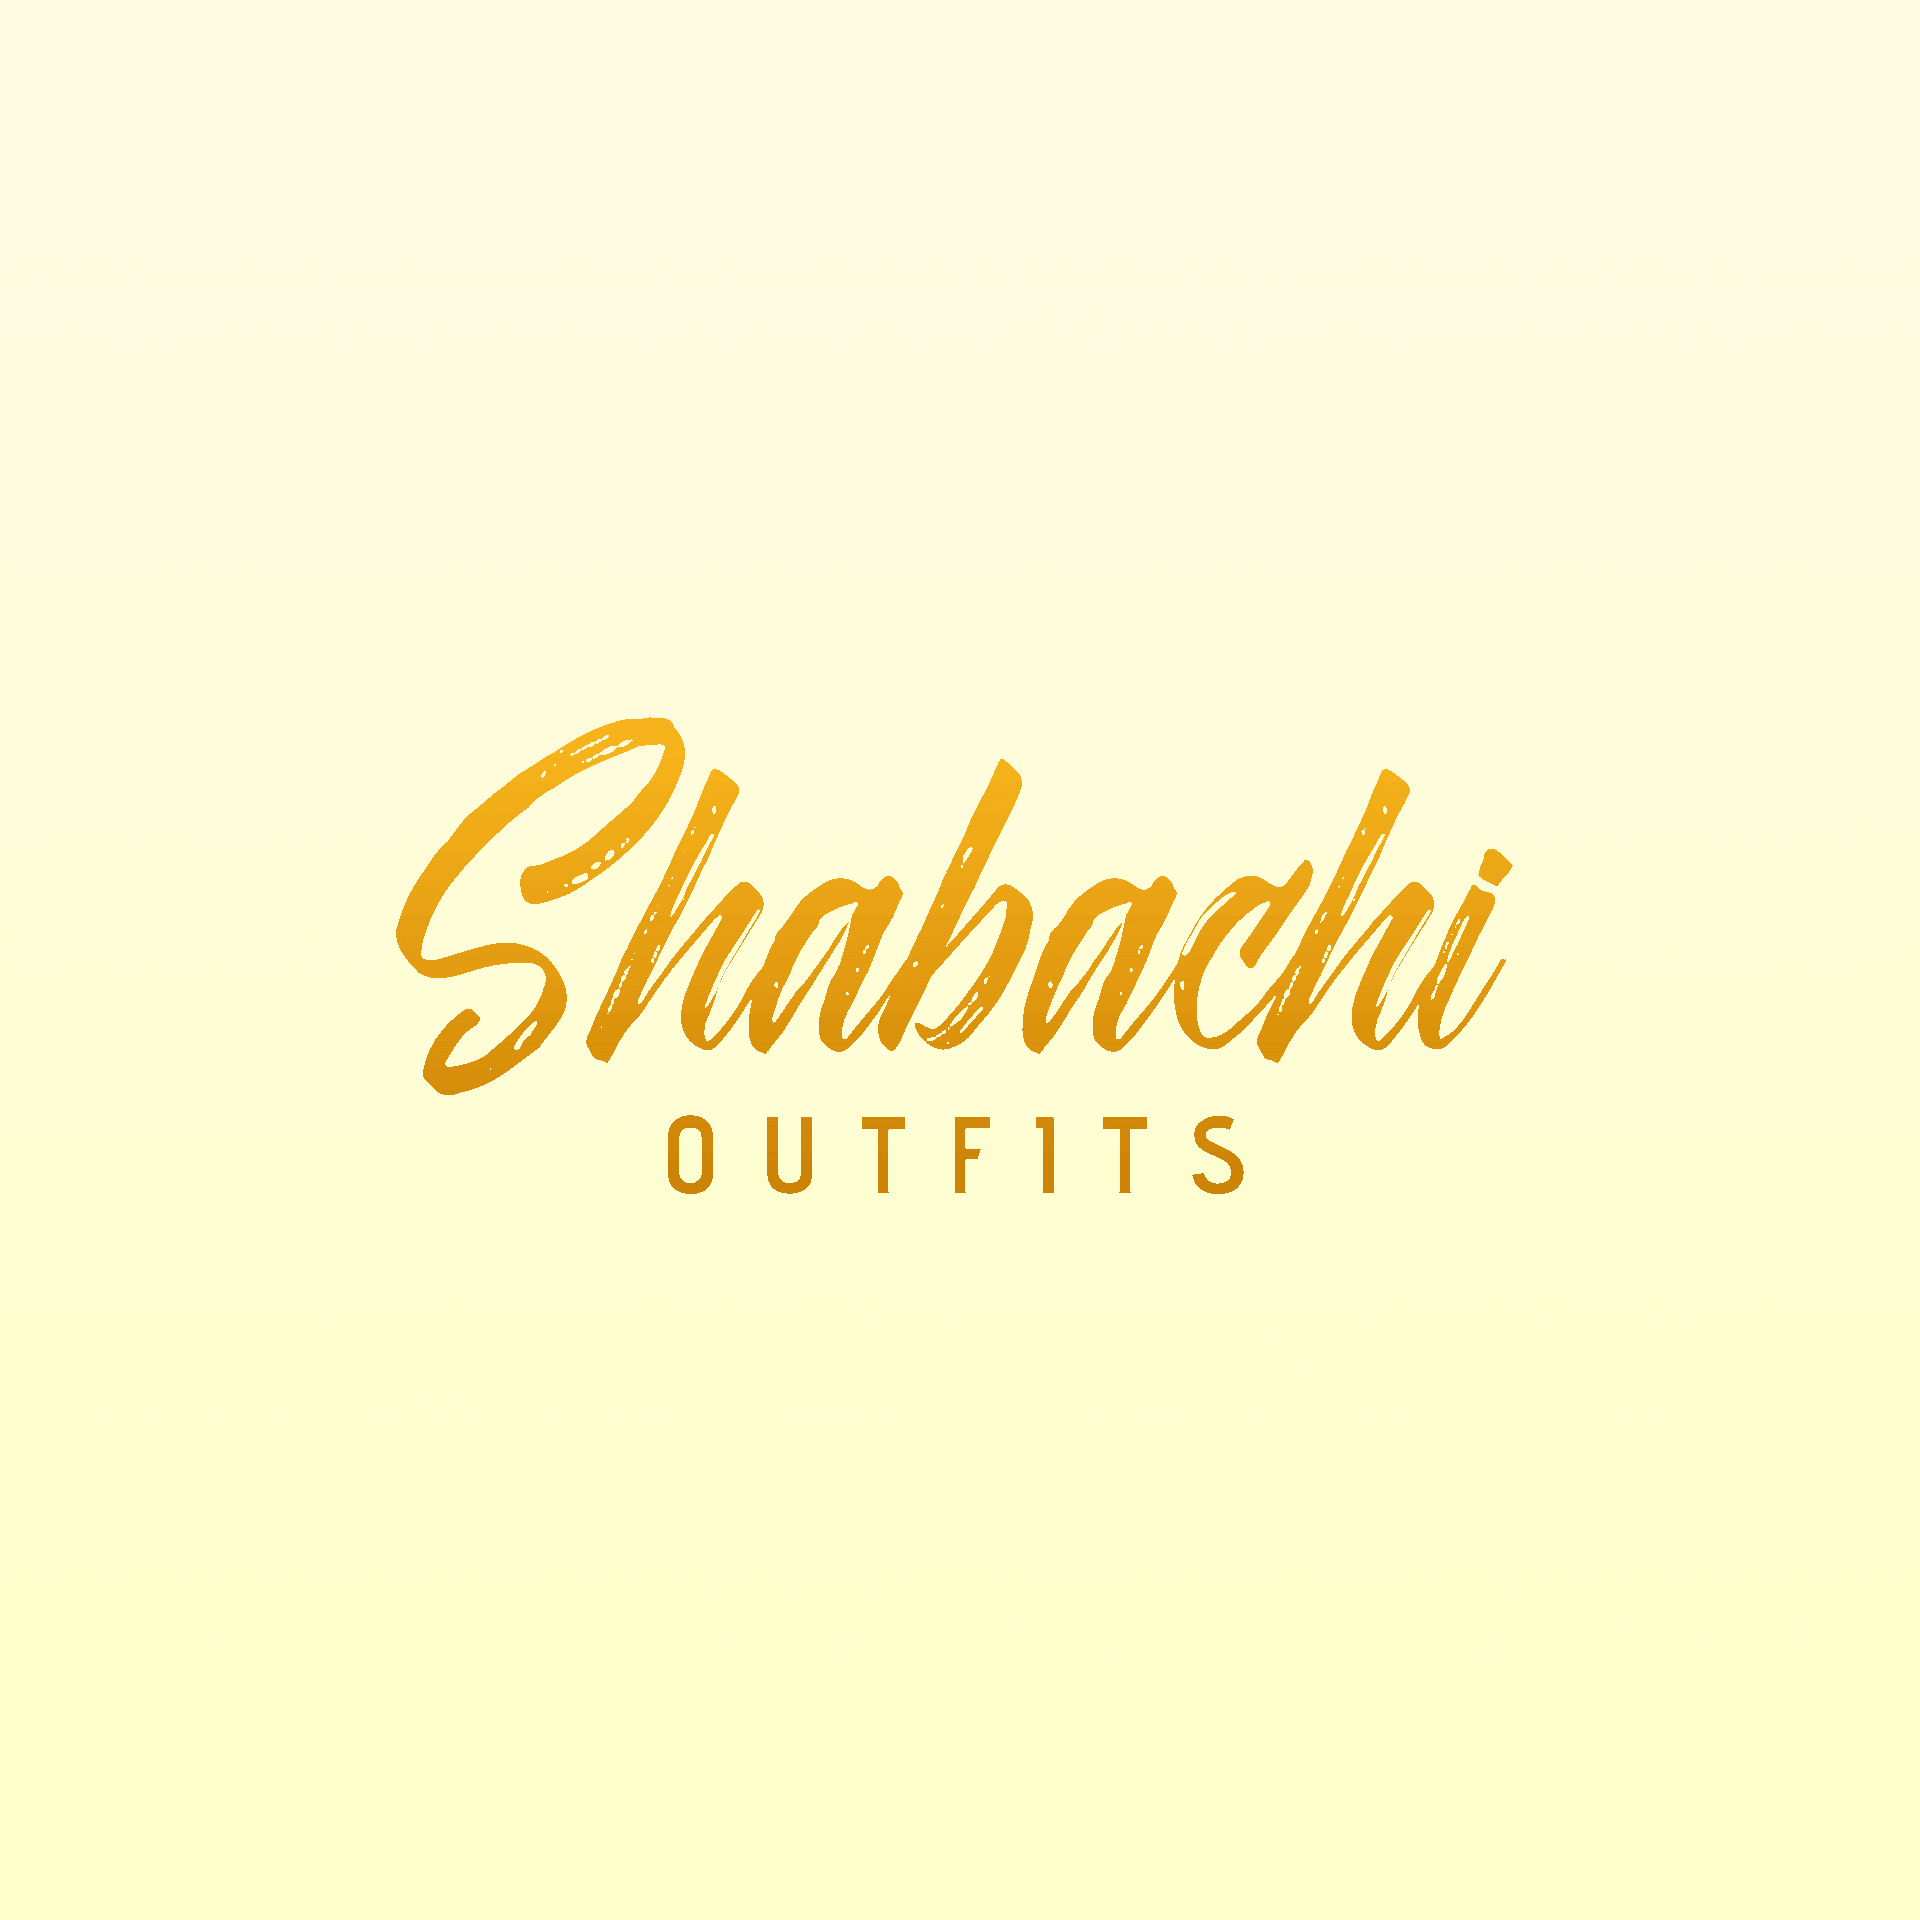 Shabachi outfit